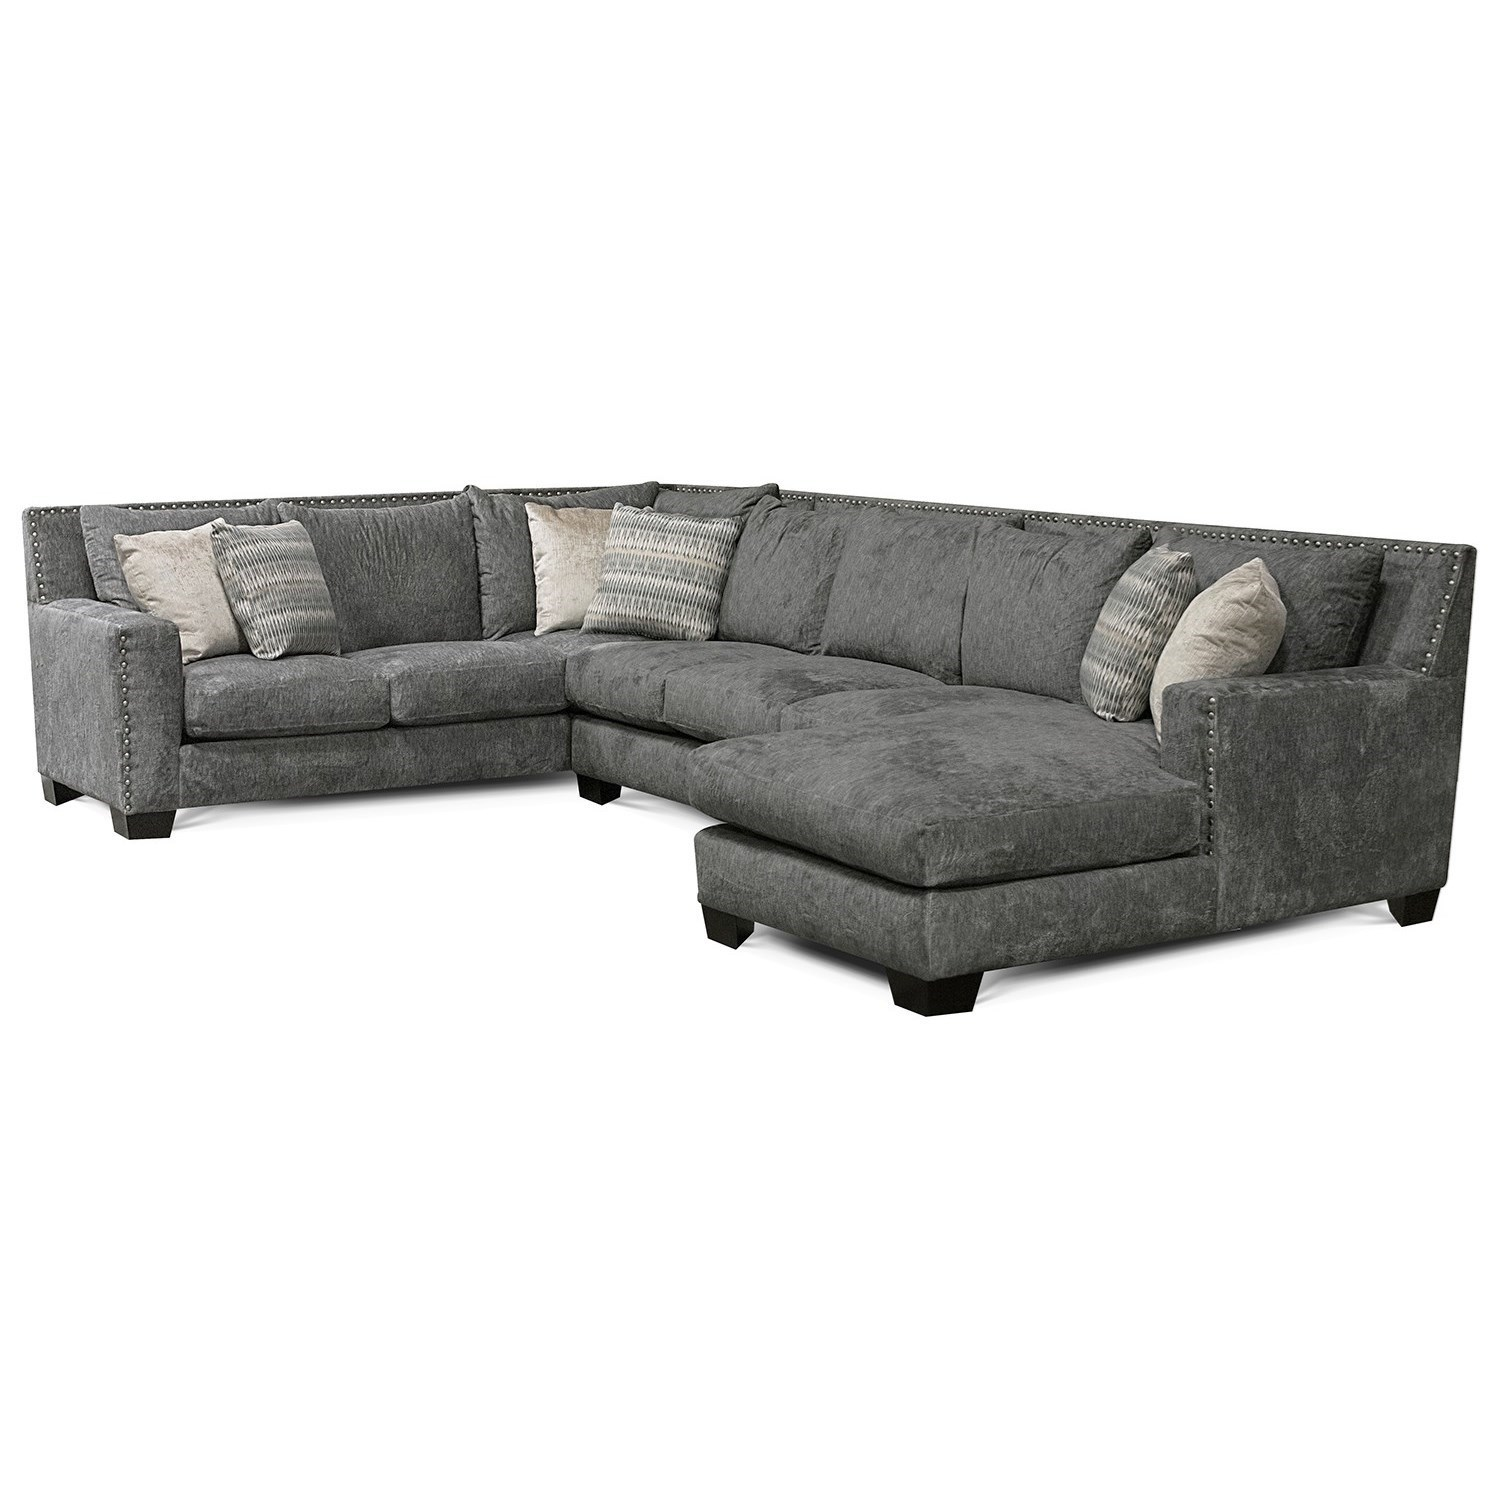 Picture of: England Luckenbach Contemporary Sectional Sofa With Chaise And Nailhead Trim Rune S Furniture Sectional Sofas